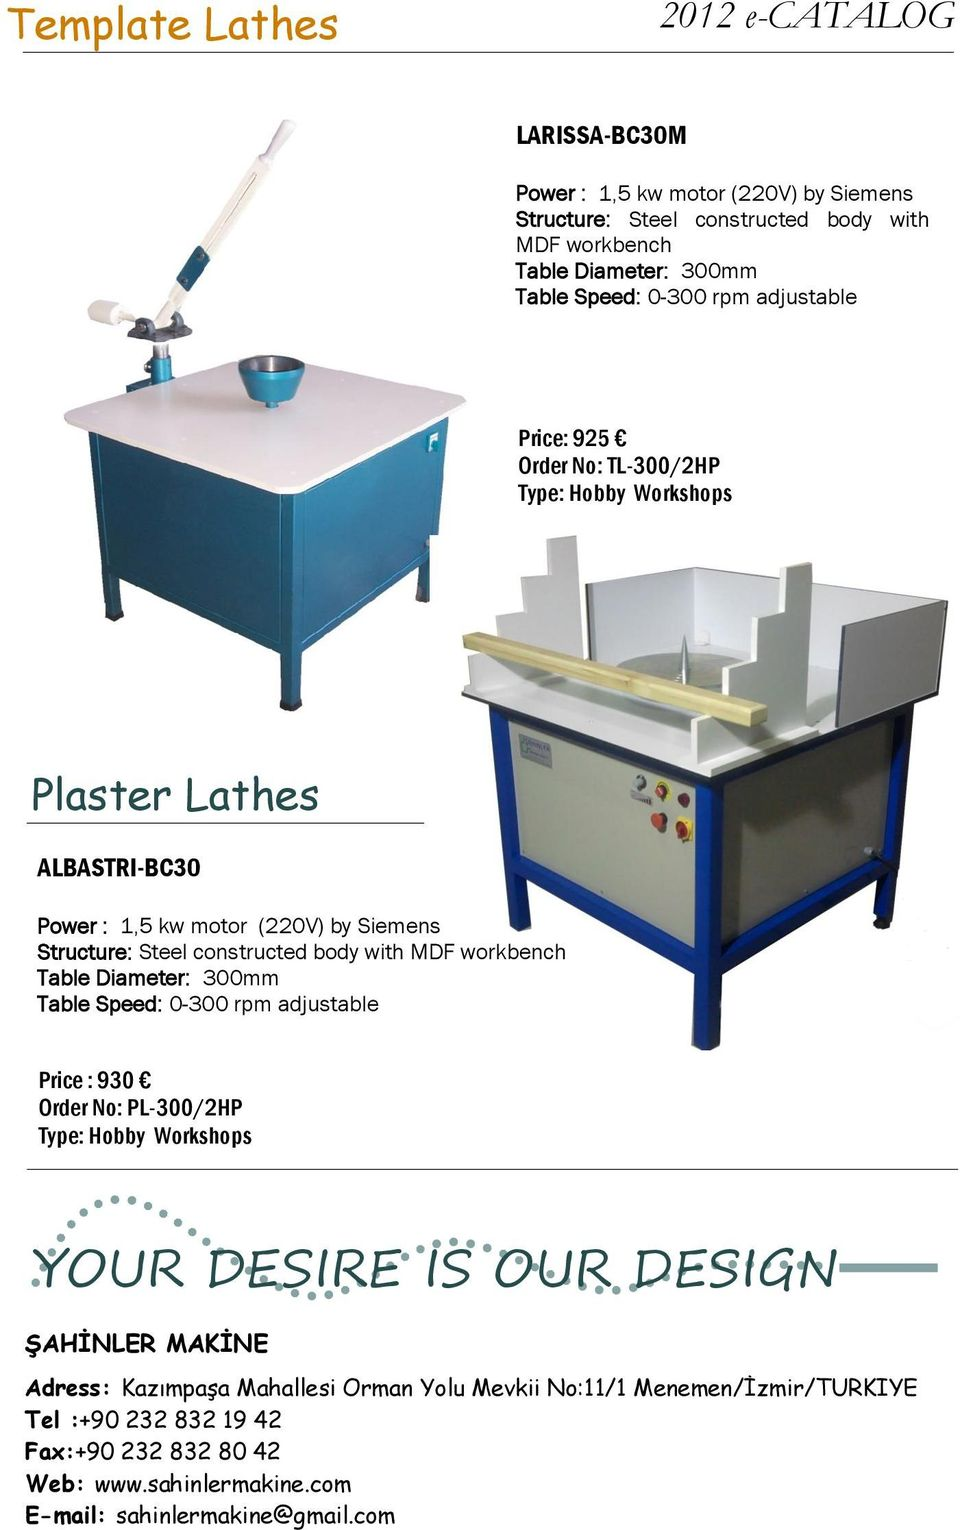 ALBASTRI-BC30 Power : 1,5 kw motor (220V) by Siemens Structure: Steel constructed body with MDF workbench Table Diameter: 300mm